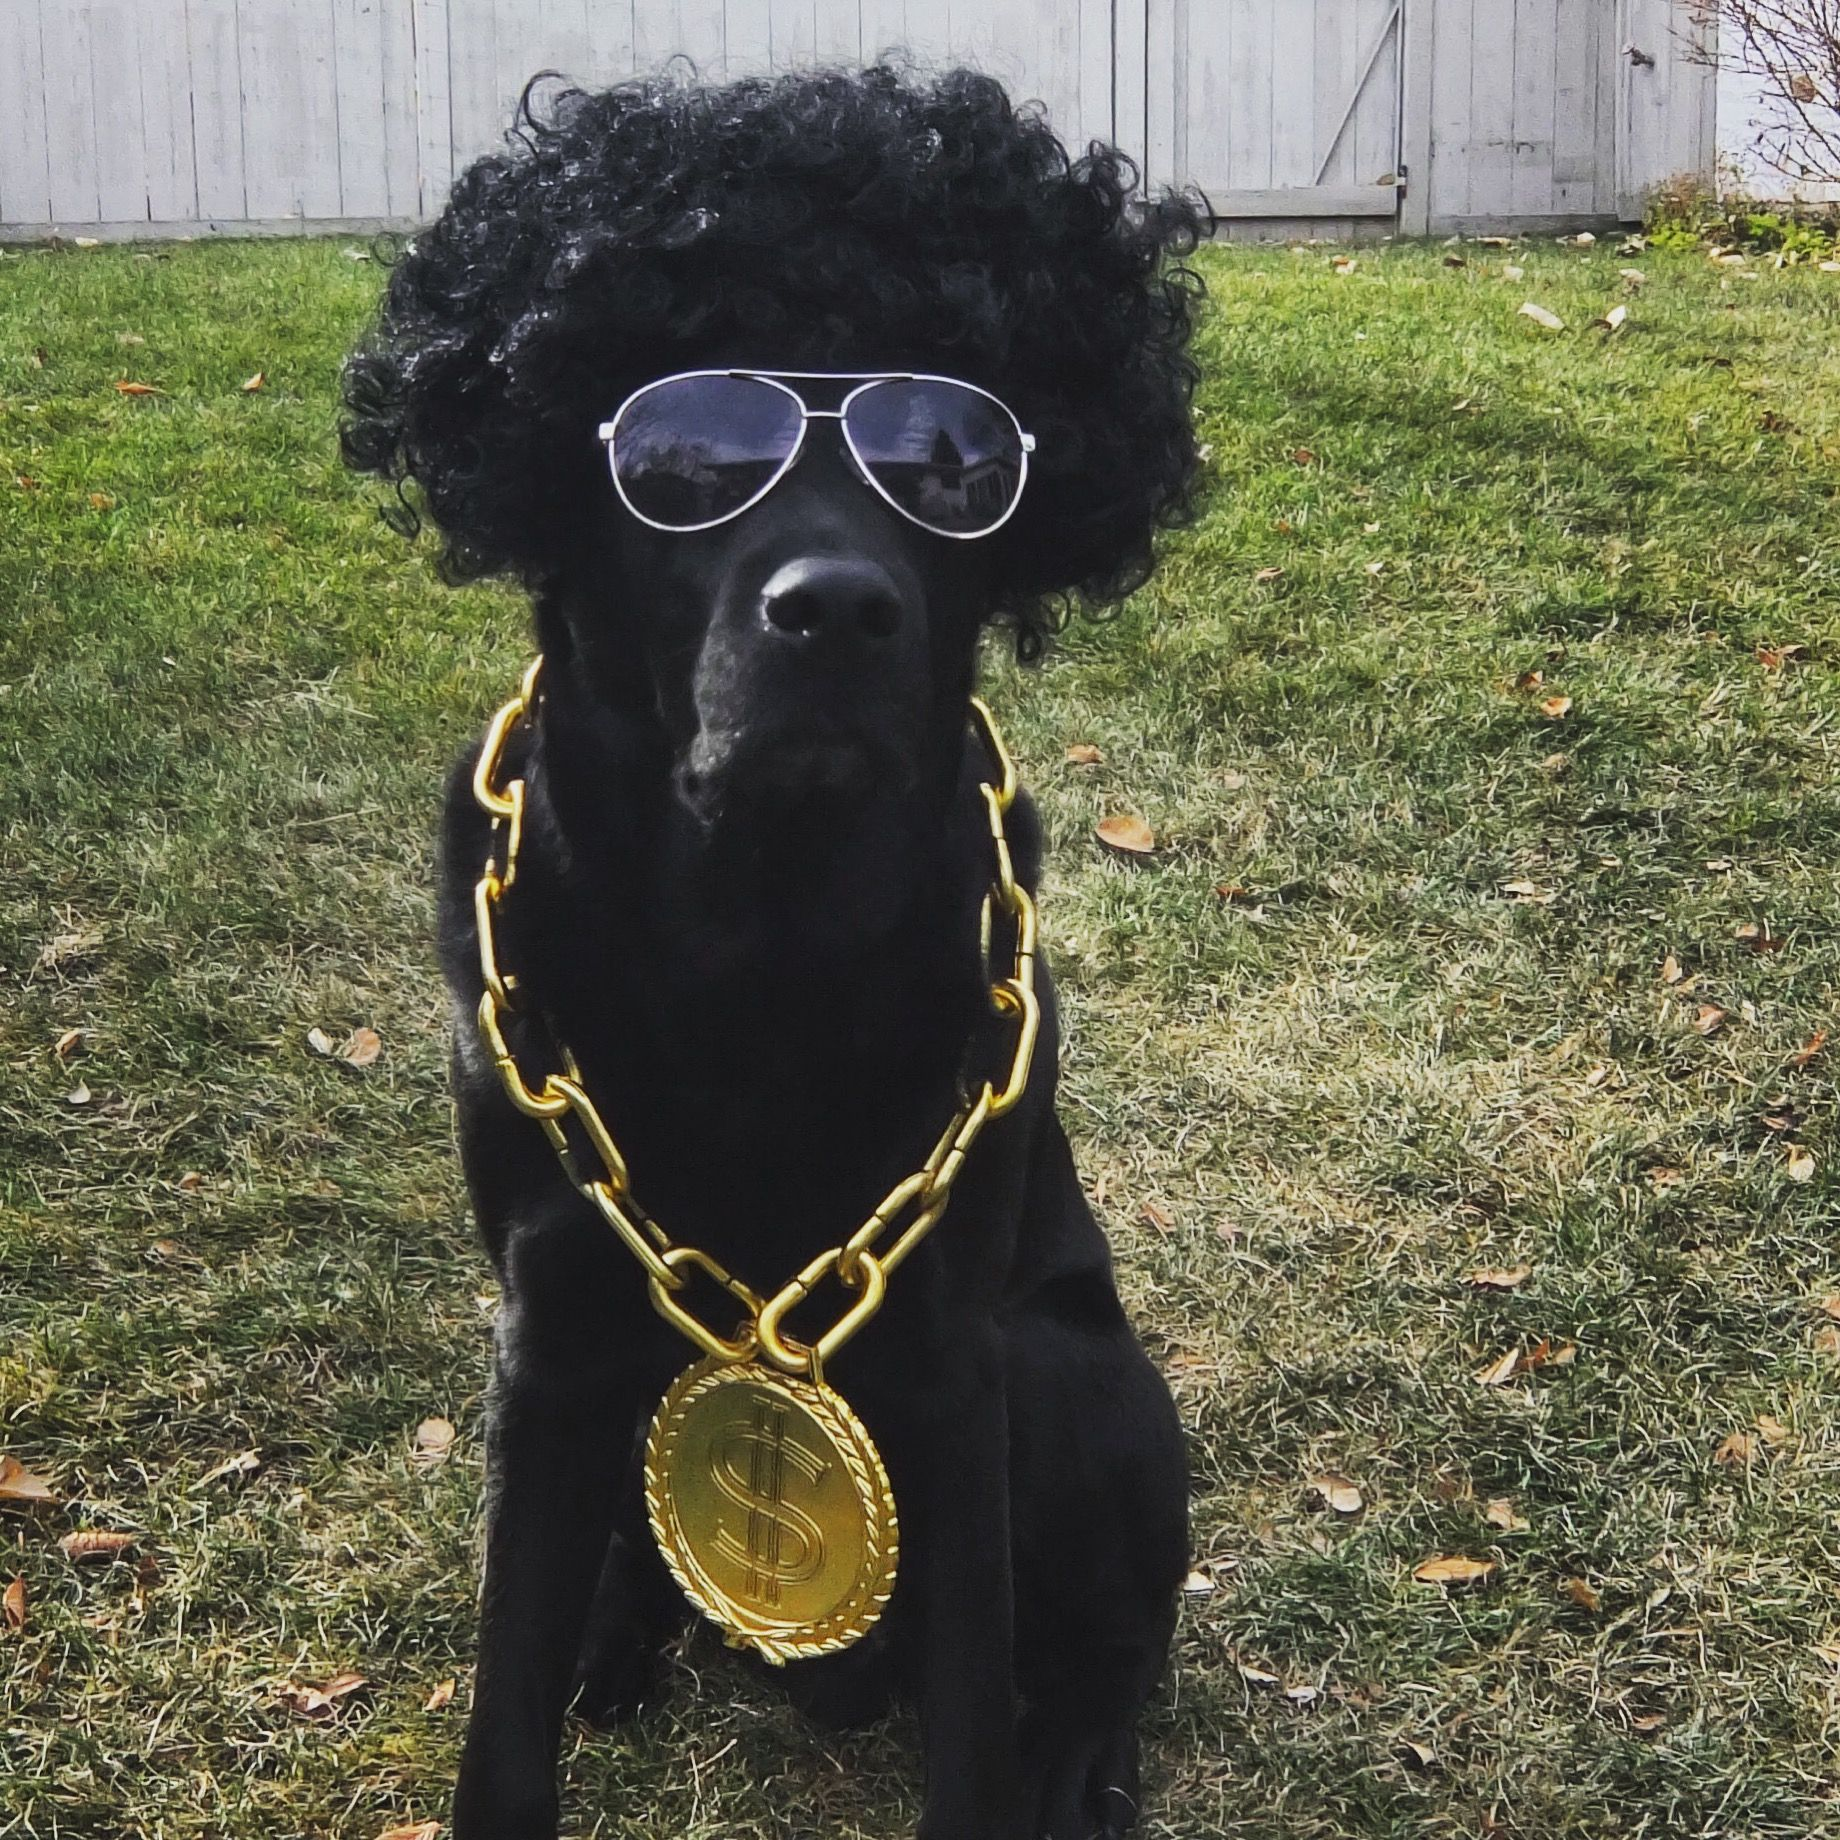 Dog Halloween Costume Rapper Mix Tape Money Chain Cute Puppy